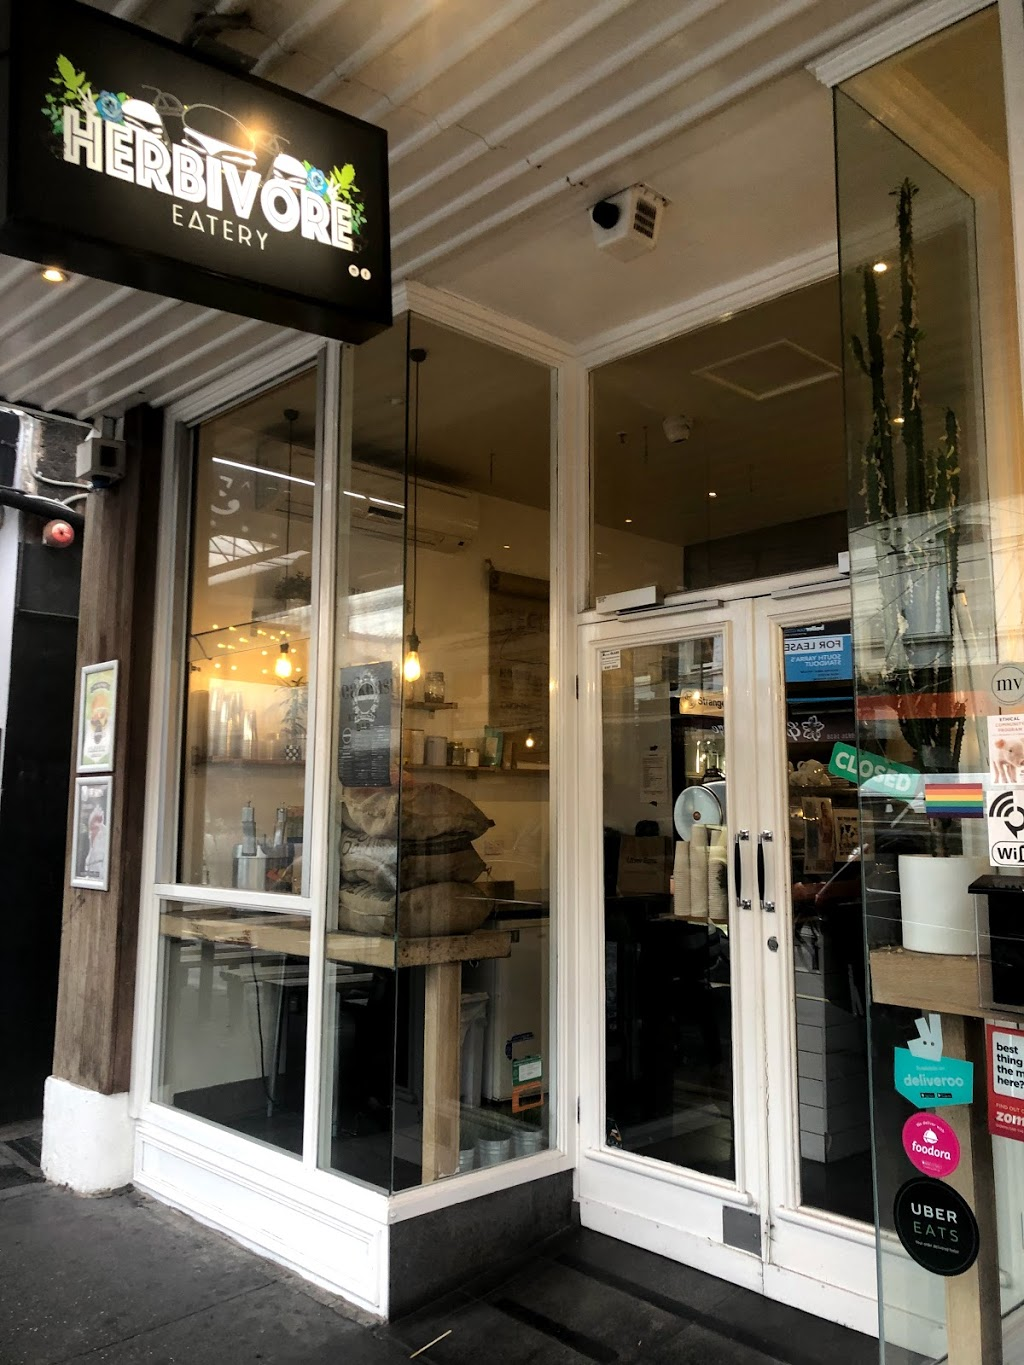 Herbivore Eatery   cafe   361 Chapel St, South Yarra VIC 3141, Australia   0455287649 OR +61 455 287 649